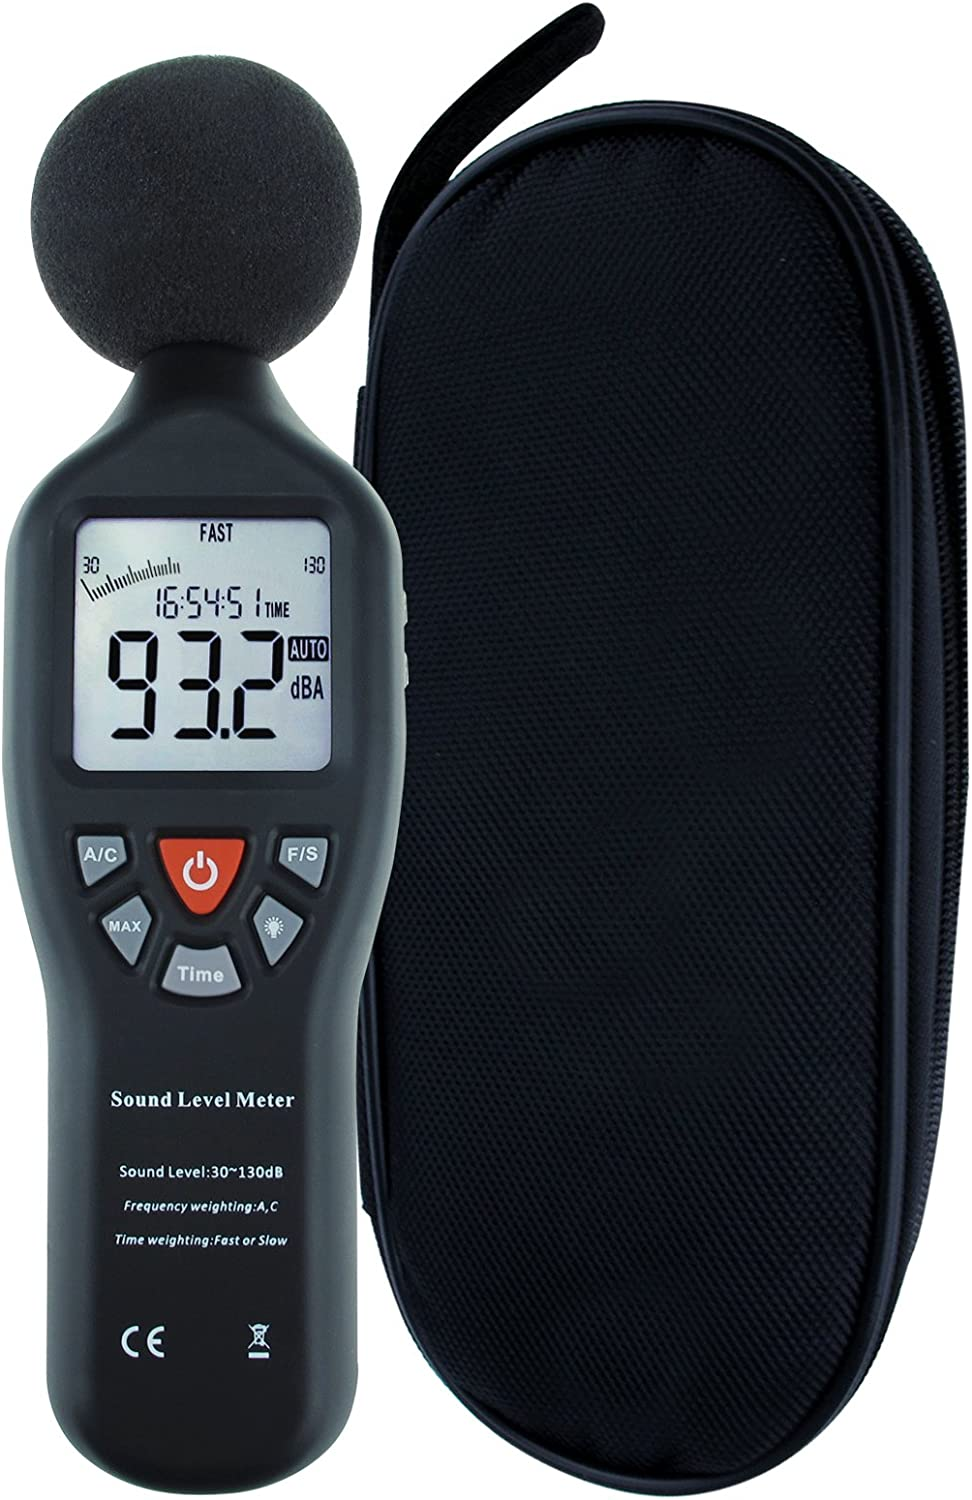 Gain Express Professional Decibel Meter Sound Level Meter with Backlight Display High Accuracy SPL Meter dB Meter Measuring 30dB-130dB (Without Data Record Function)